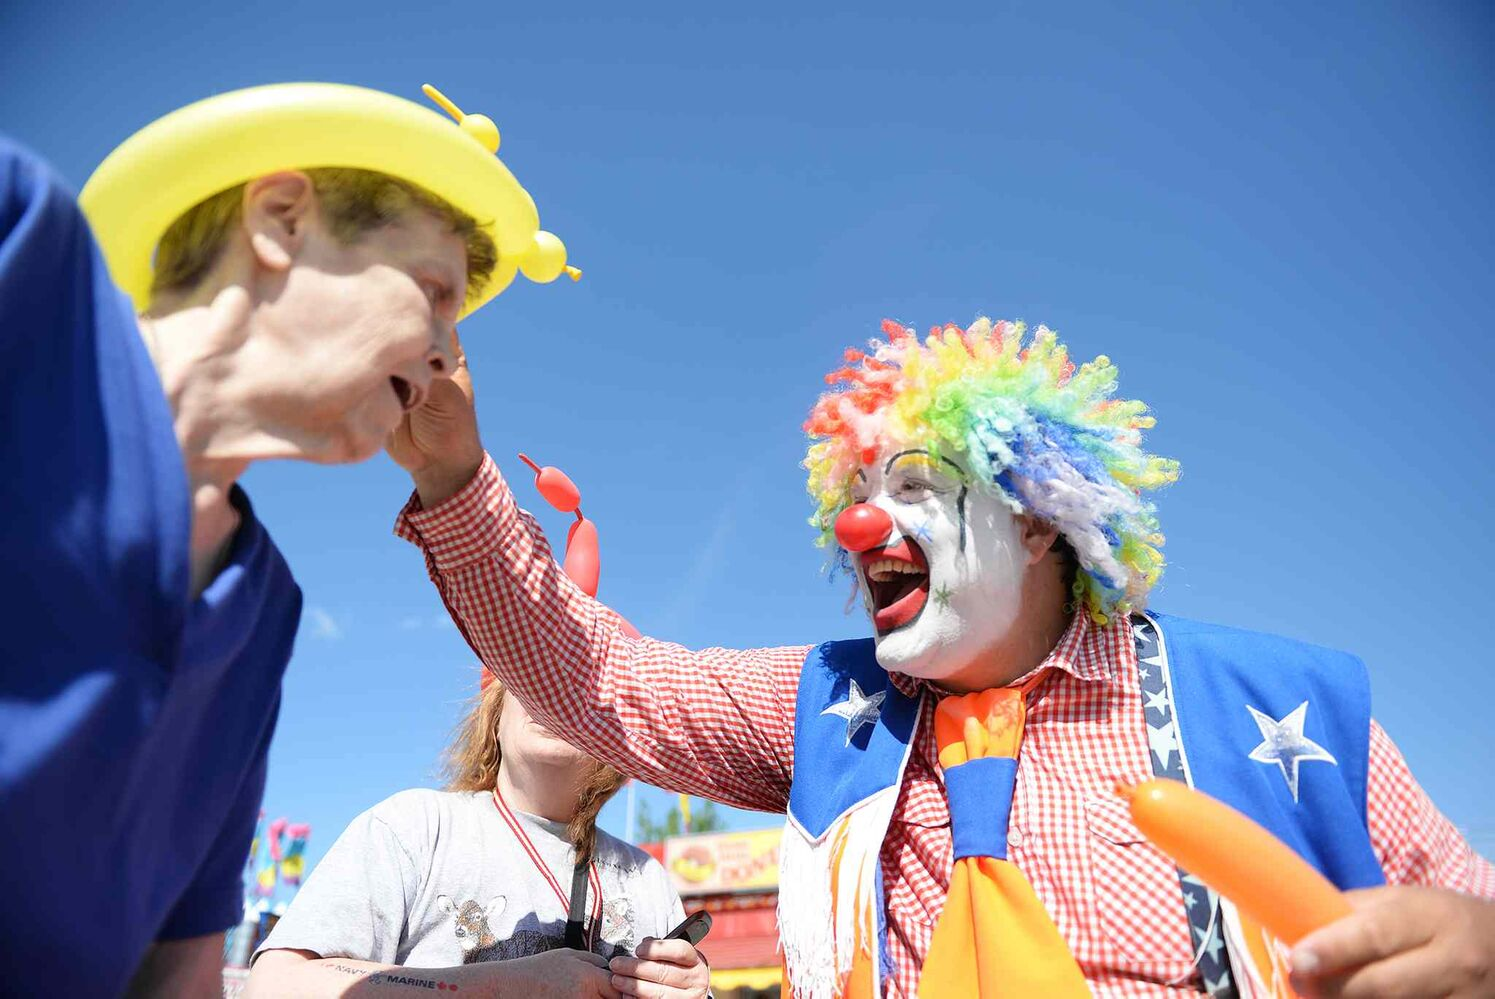 Doo Doo the Clown makes a balloon hat for Sue Fleming on Wednesday. (Sarah Taylor / Winnipeg Free Press)